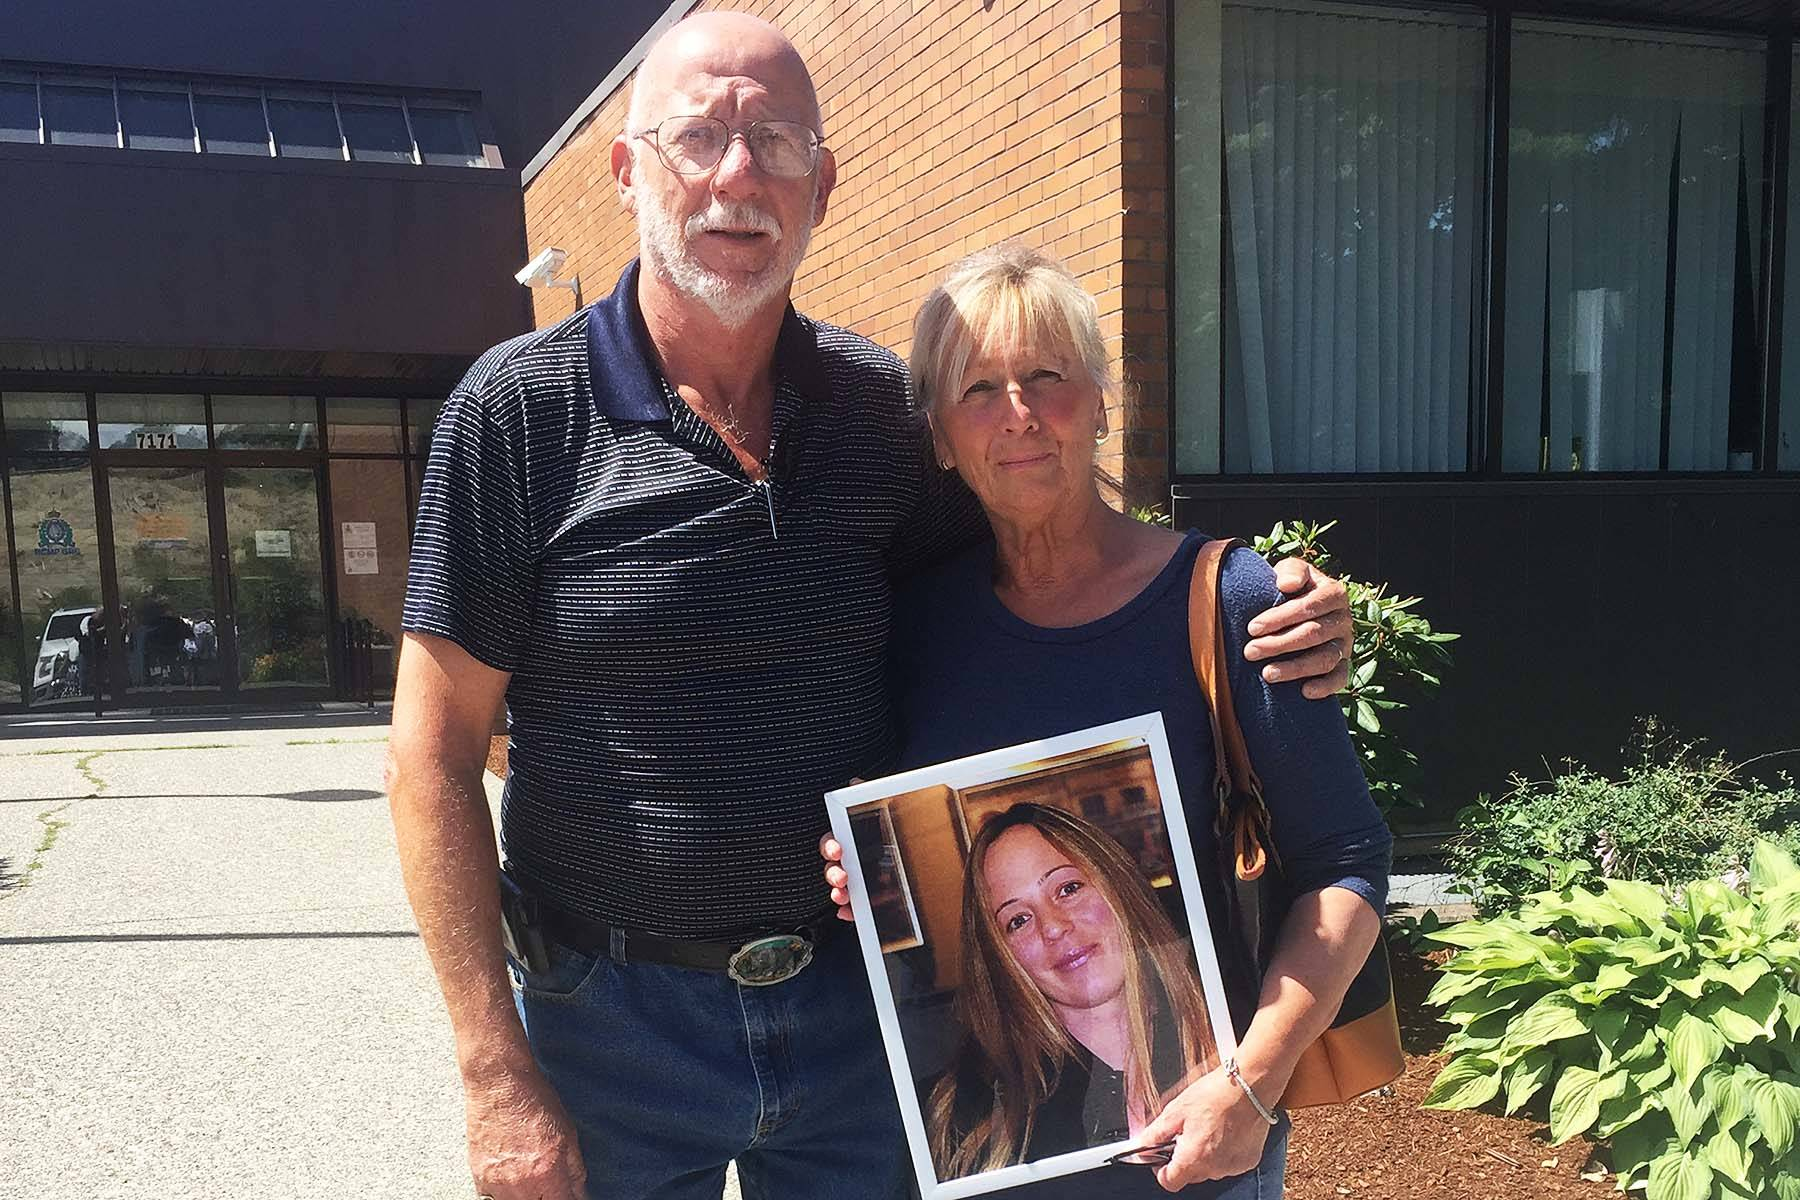 'I feel free' says mother of BC murder victim after daughter's belongings returned